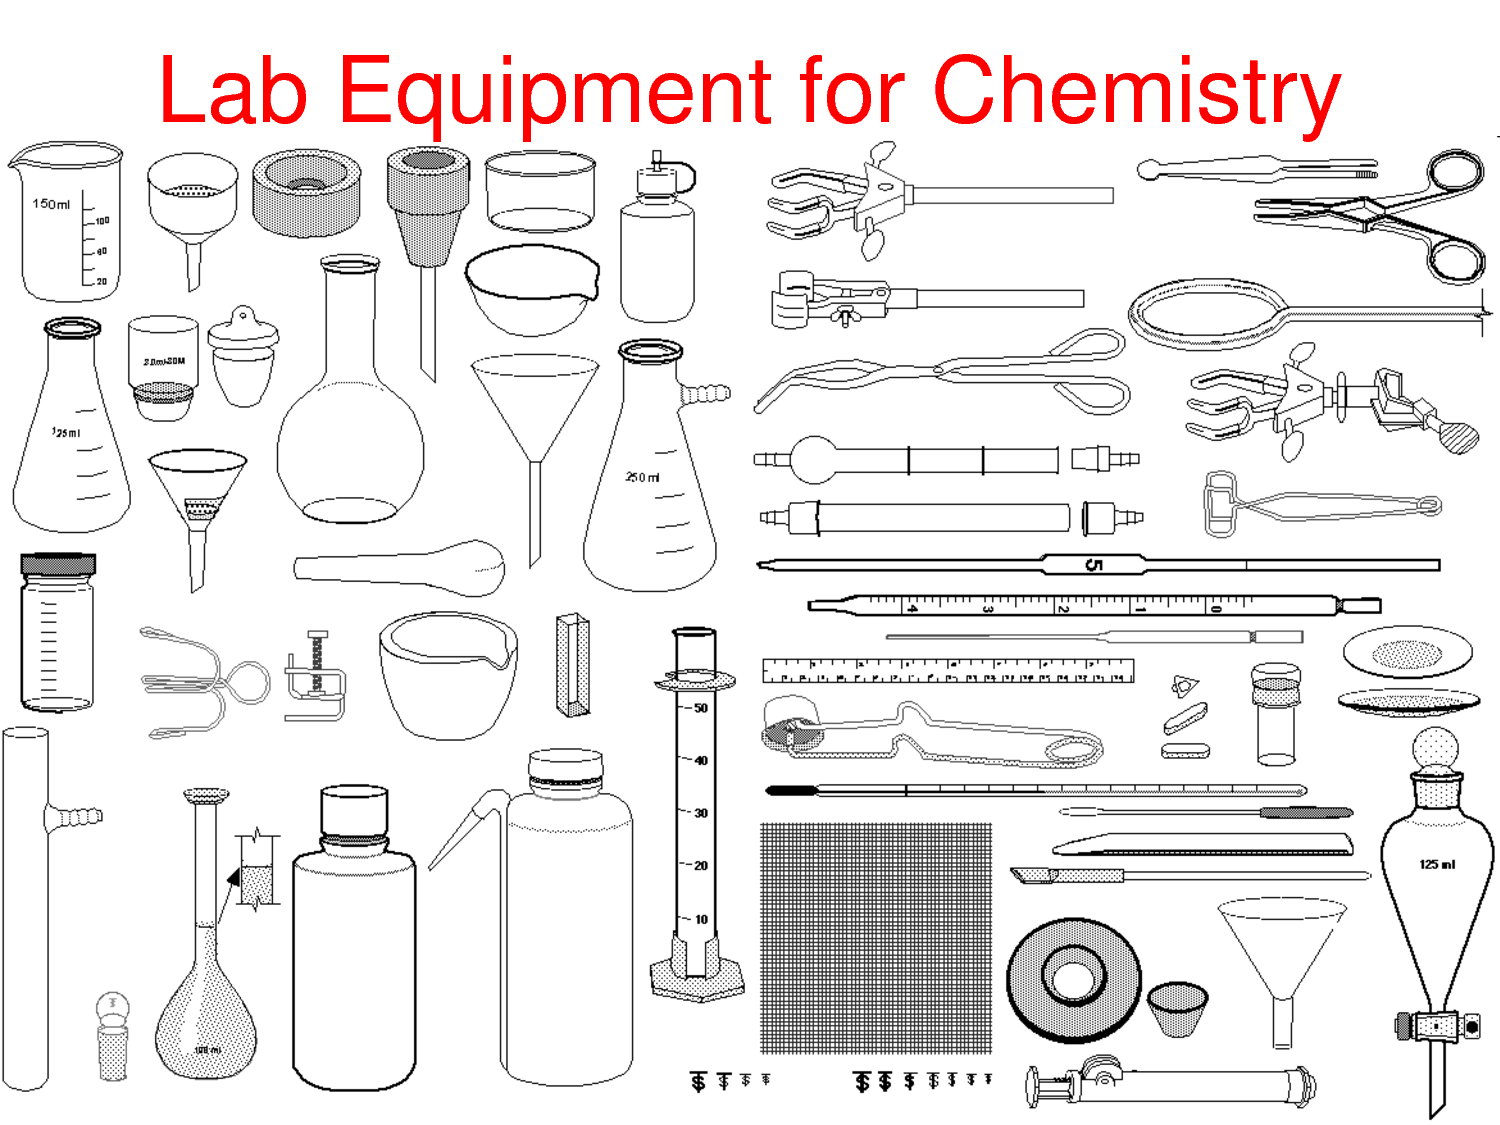 Pin By Emmanuel Tenailleau On Vocabulaire Sciences Anglais Chemistry Lab  Equipment Chemistry Labs Chemistr…   Chemistry lab equipment [ 1125 x 1500 Pixel ]